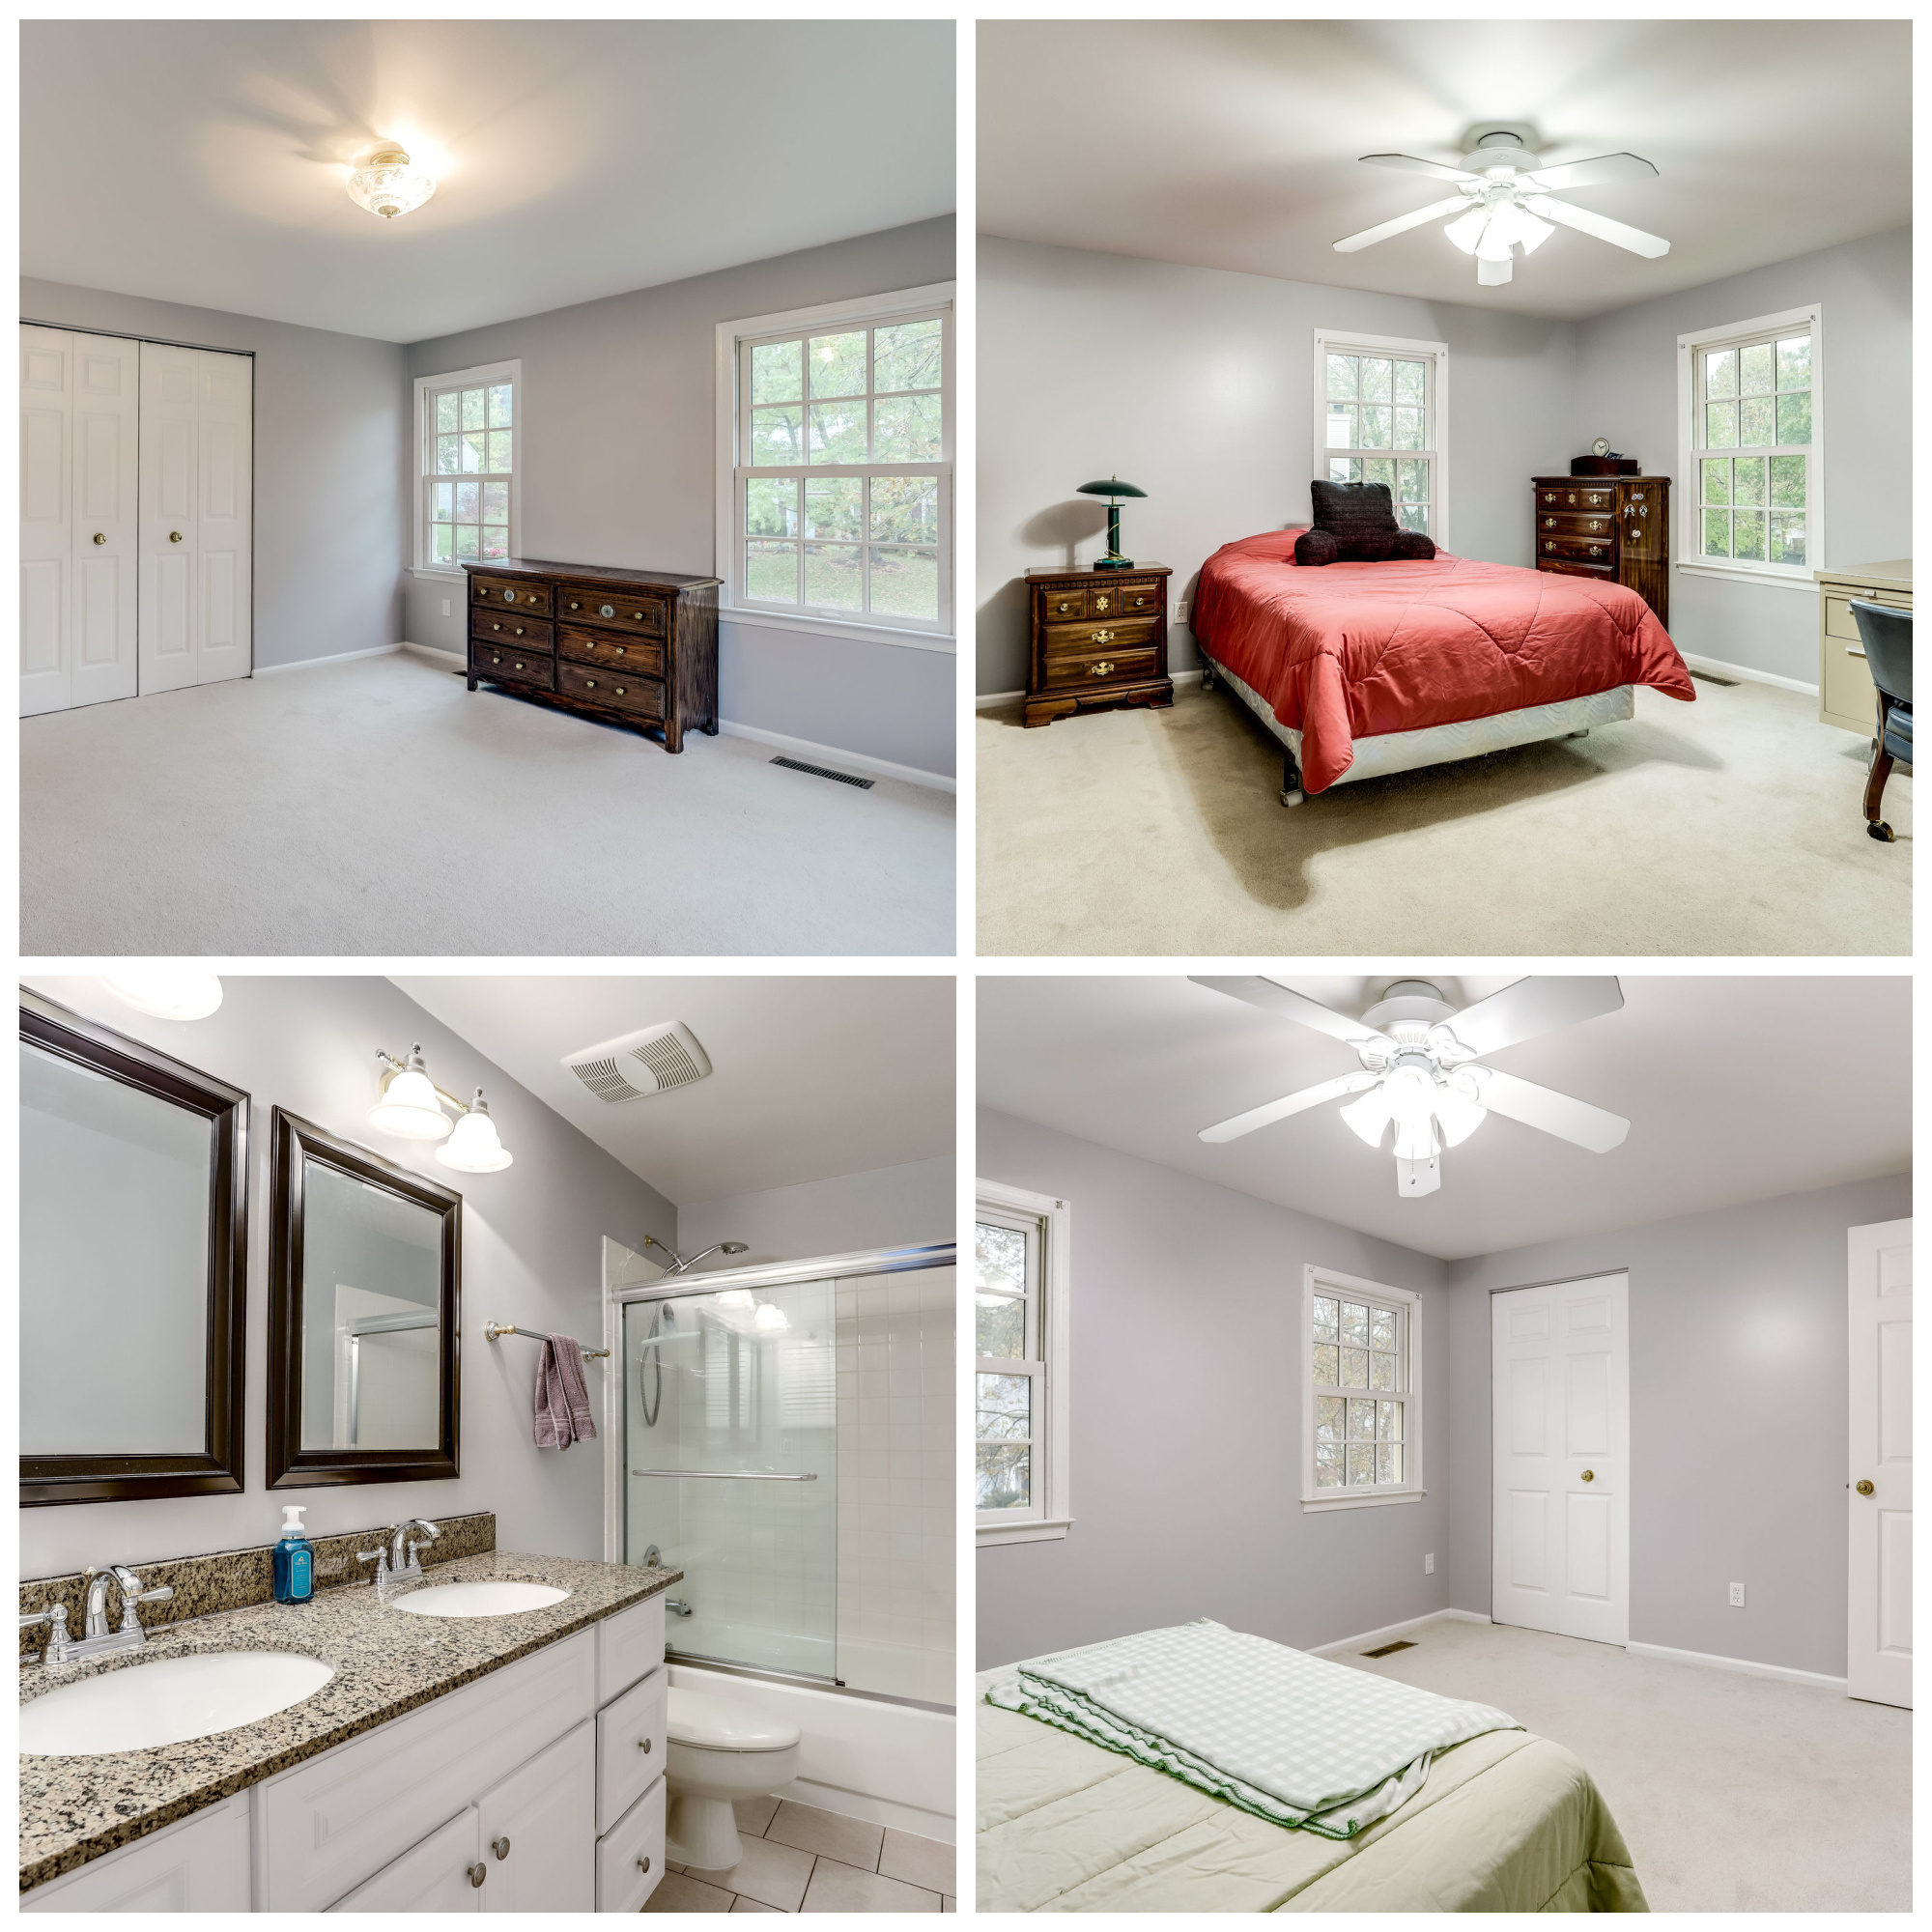 114 Peyton Rd, Sterling - Additional Bedrooms and Bath